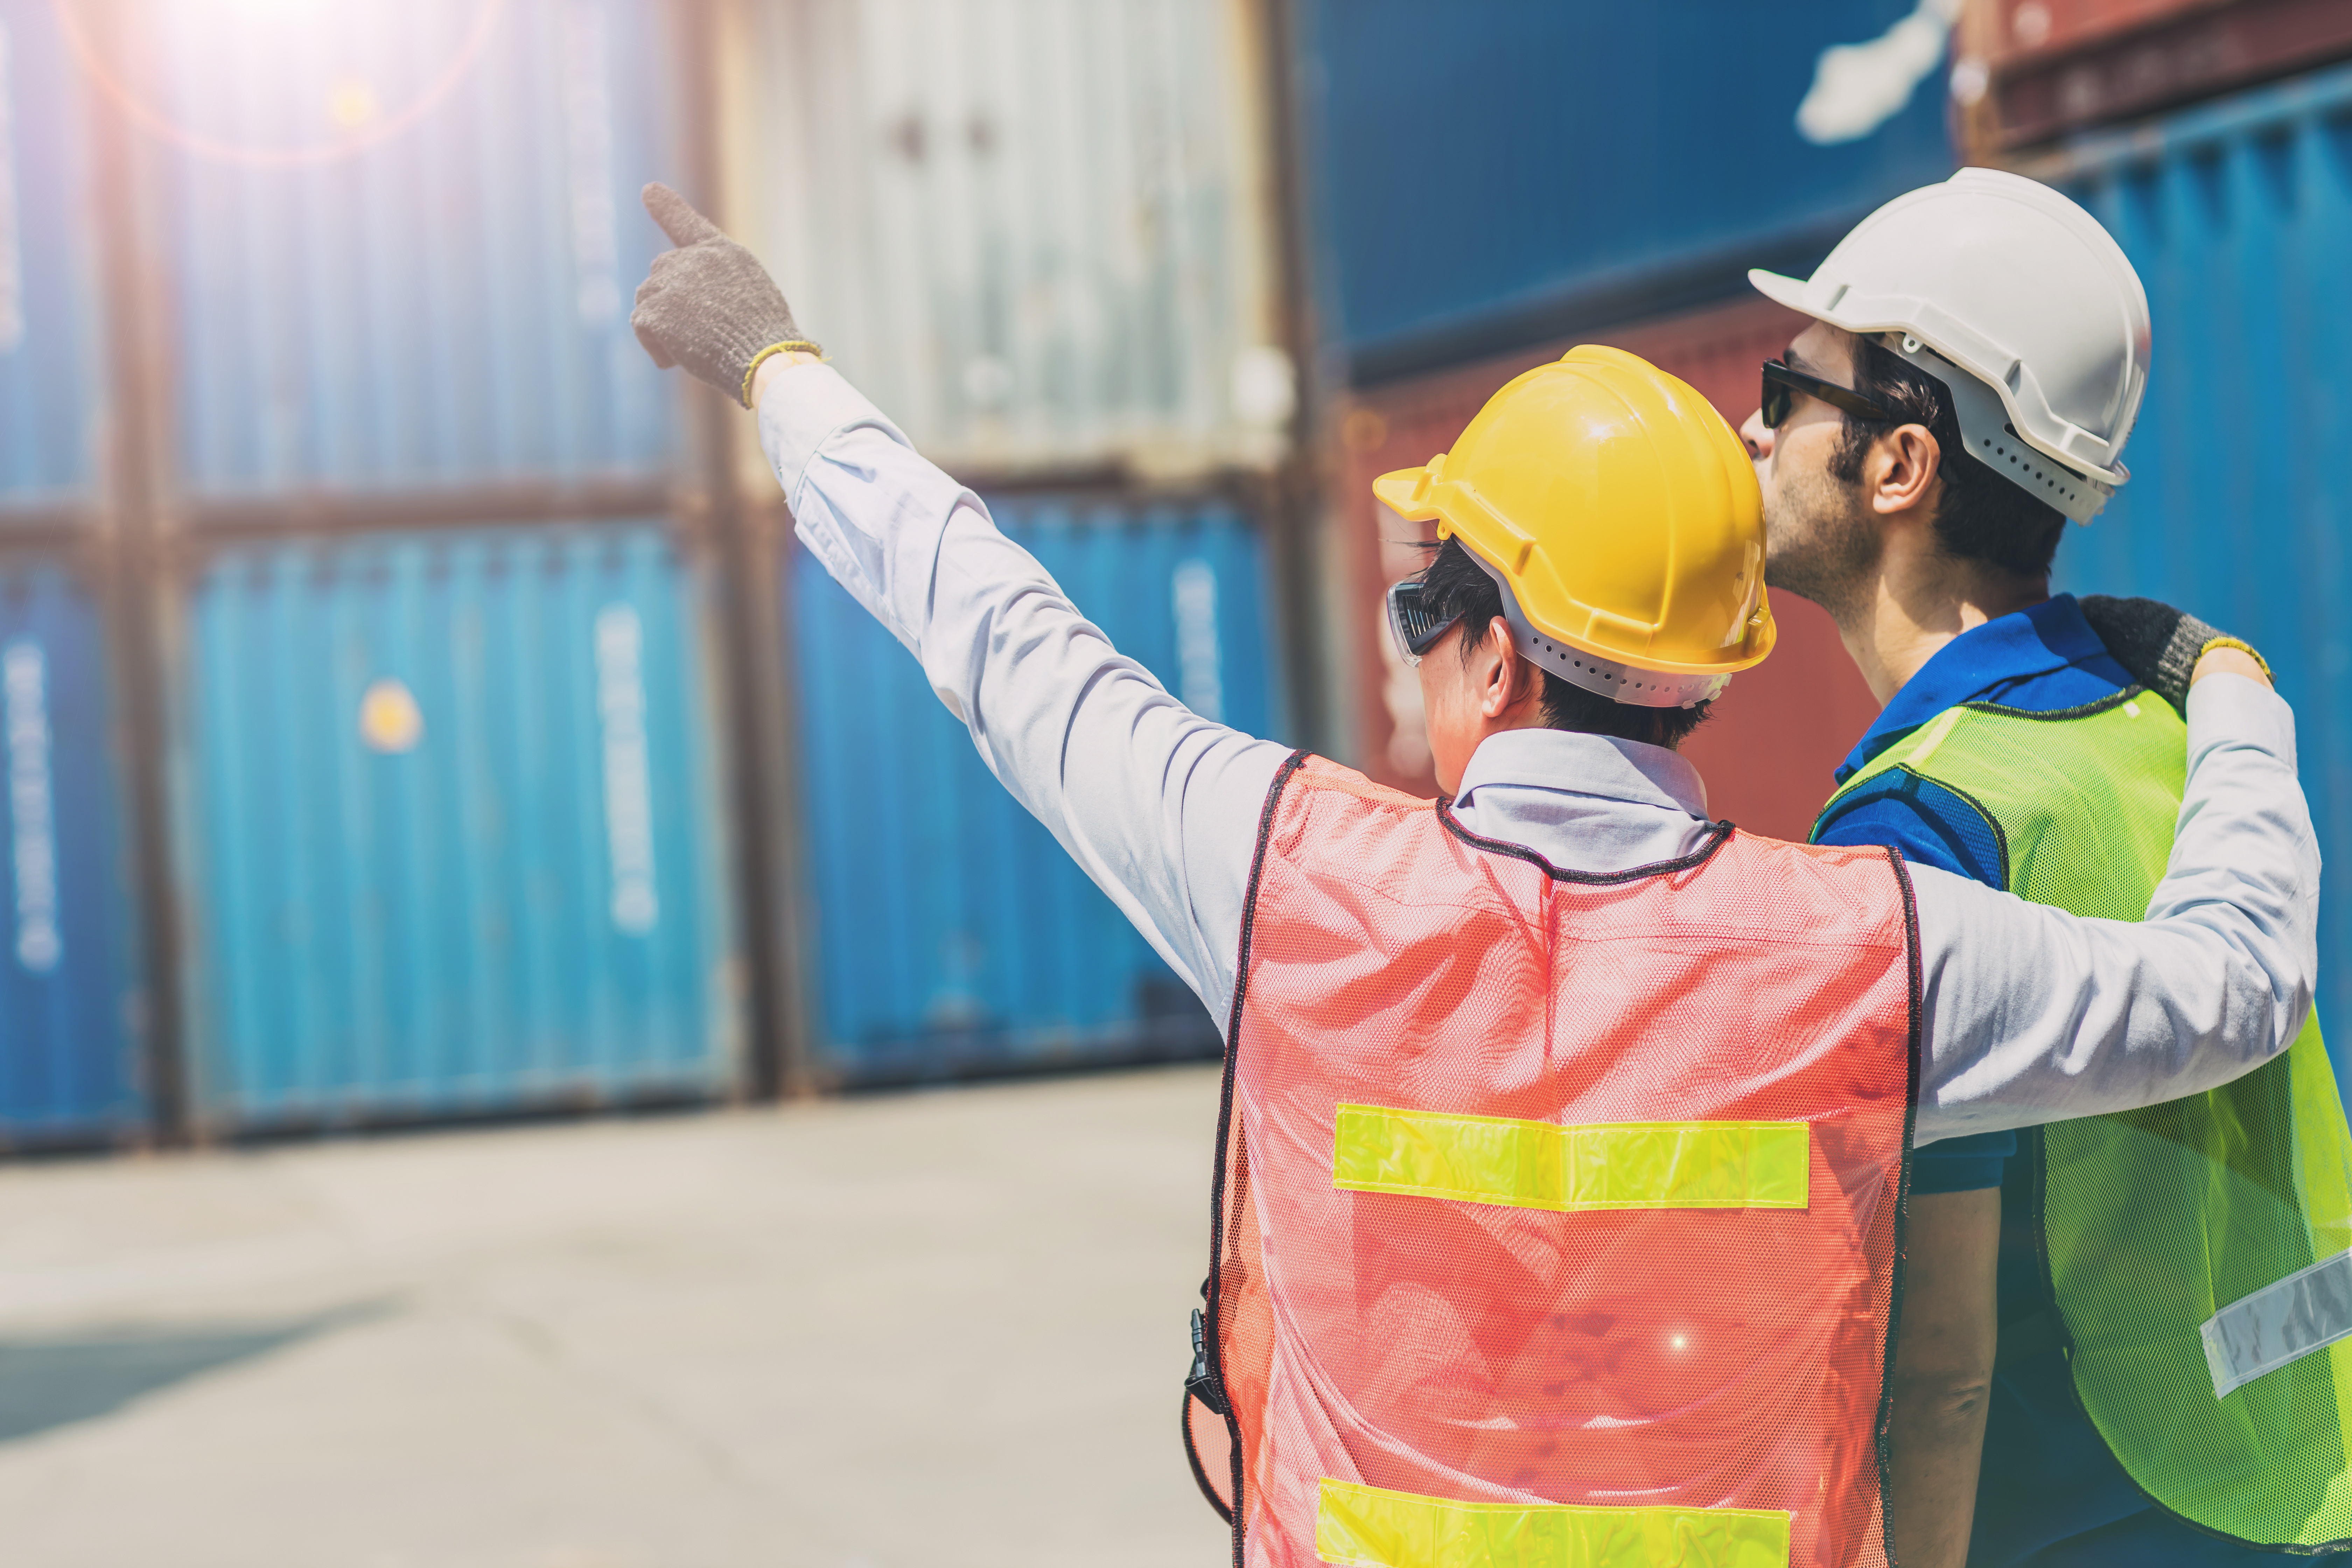 5 Common Mistakes That Freight Forwarders Make When Choosing a Trade Partner